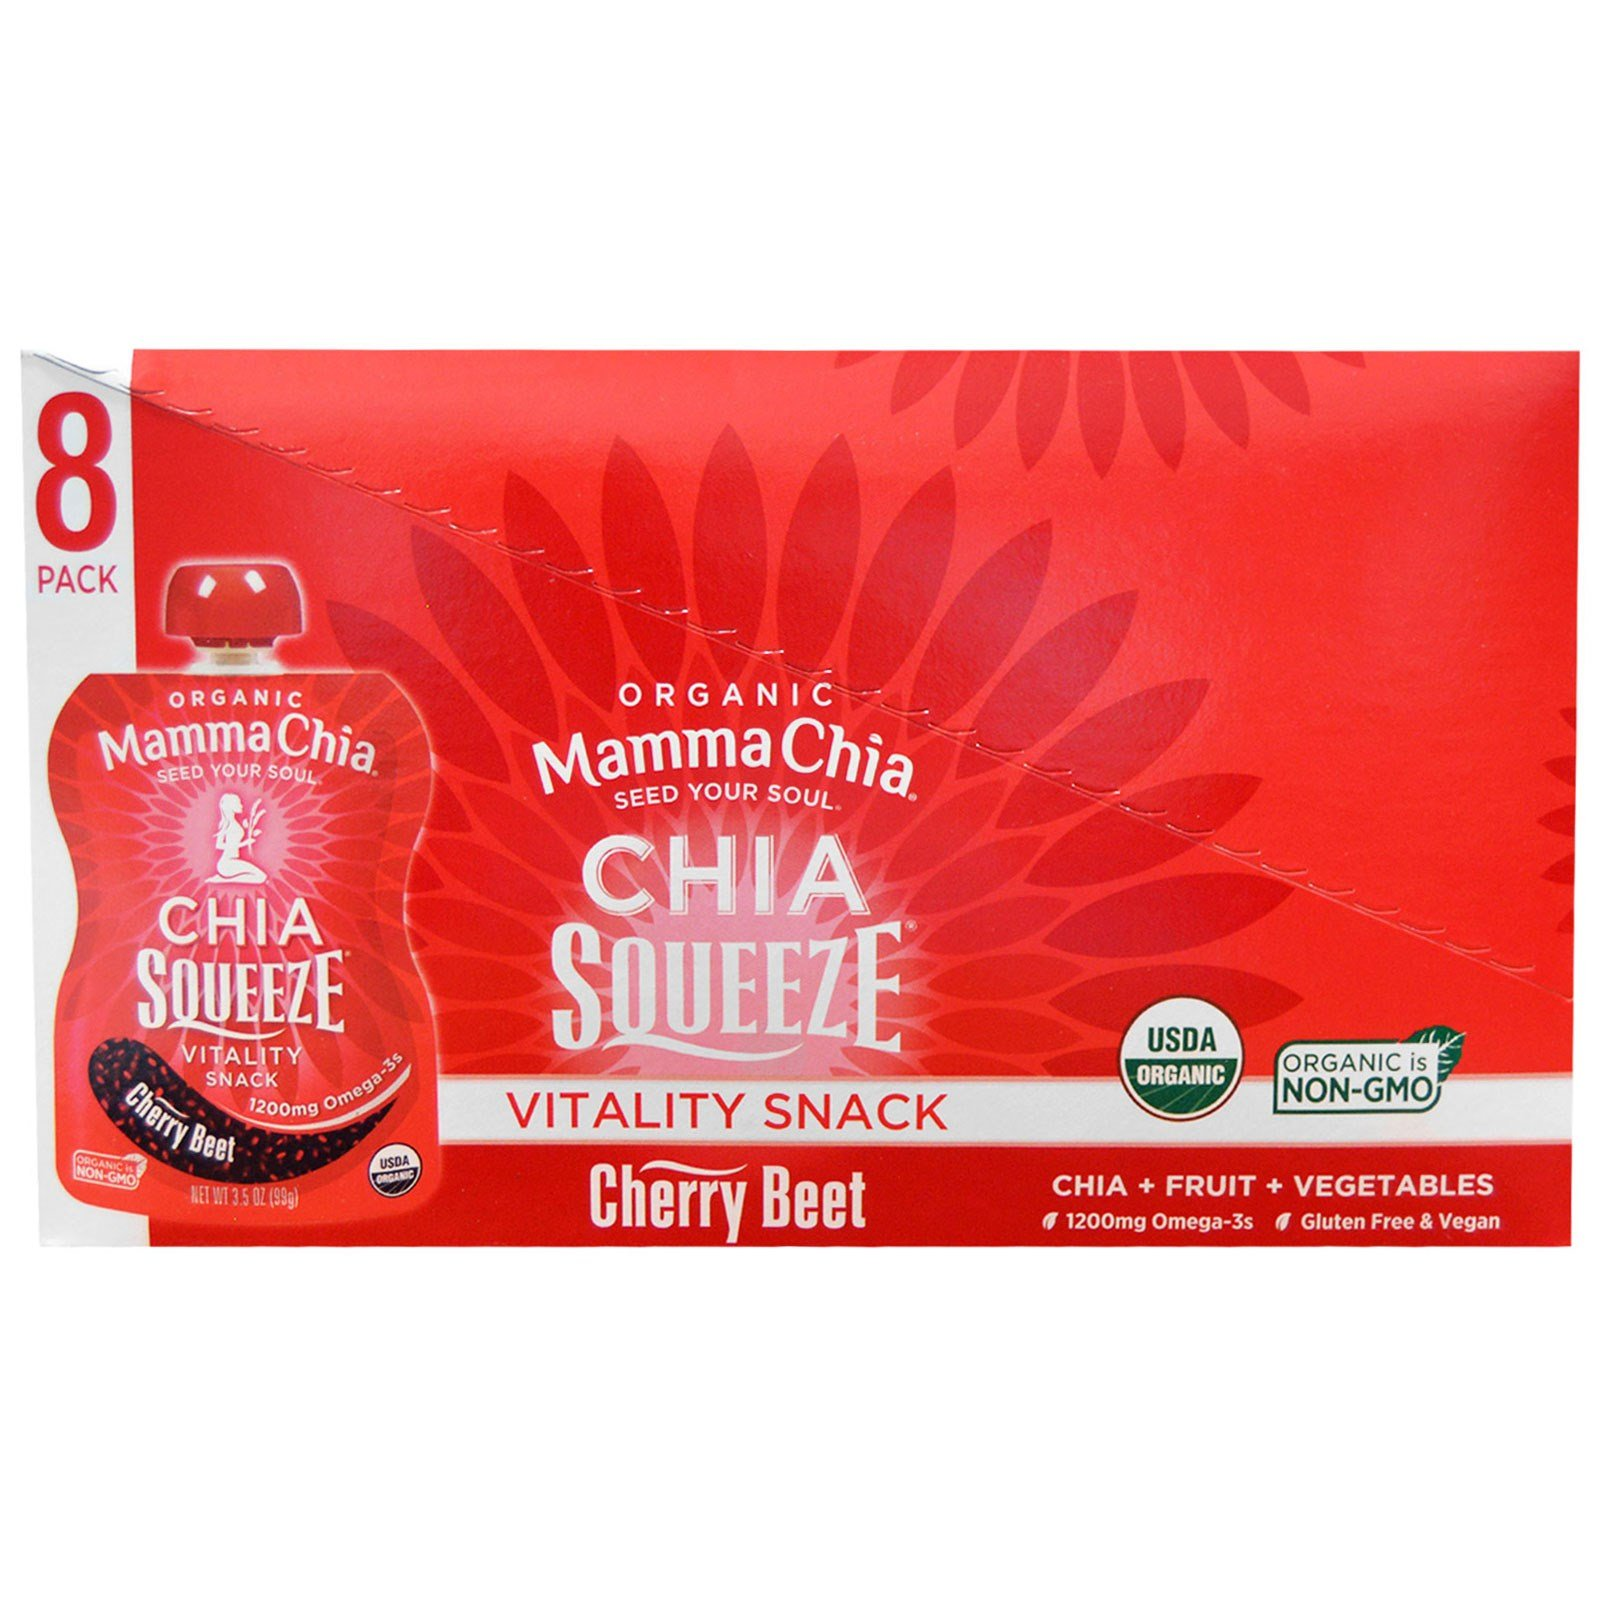 Mamma Chia Organic Chia Squeeze Vitality Snack Cherry Beet 8 Pouches 3 5 oz 99 g Each